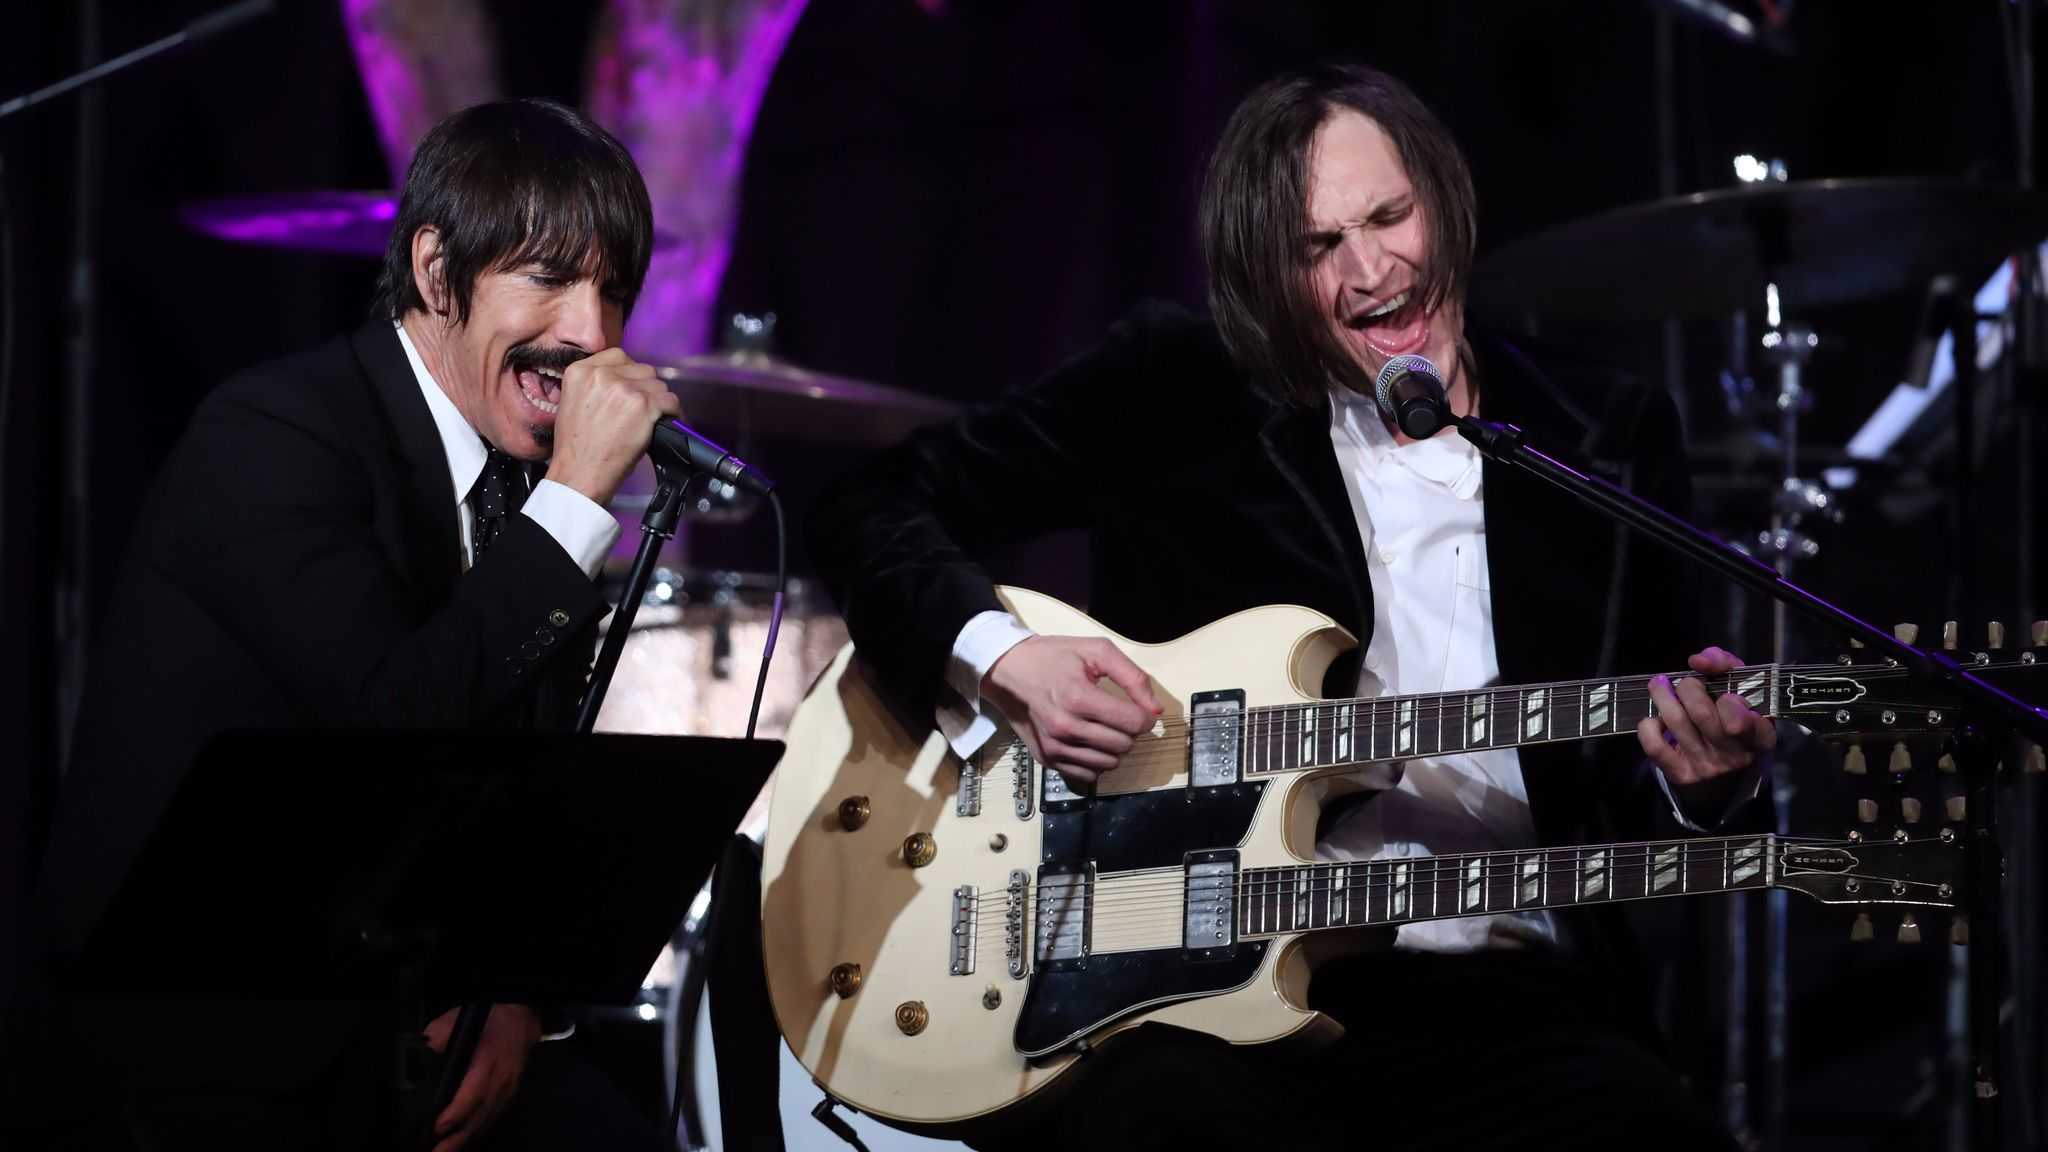 Anthony Kiedis and Josh Klinghoffer of the Red Hot Chili Peppers performs onstage at the Whole Child International's inaugural gala in Beverly Hills.